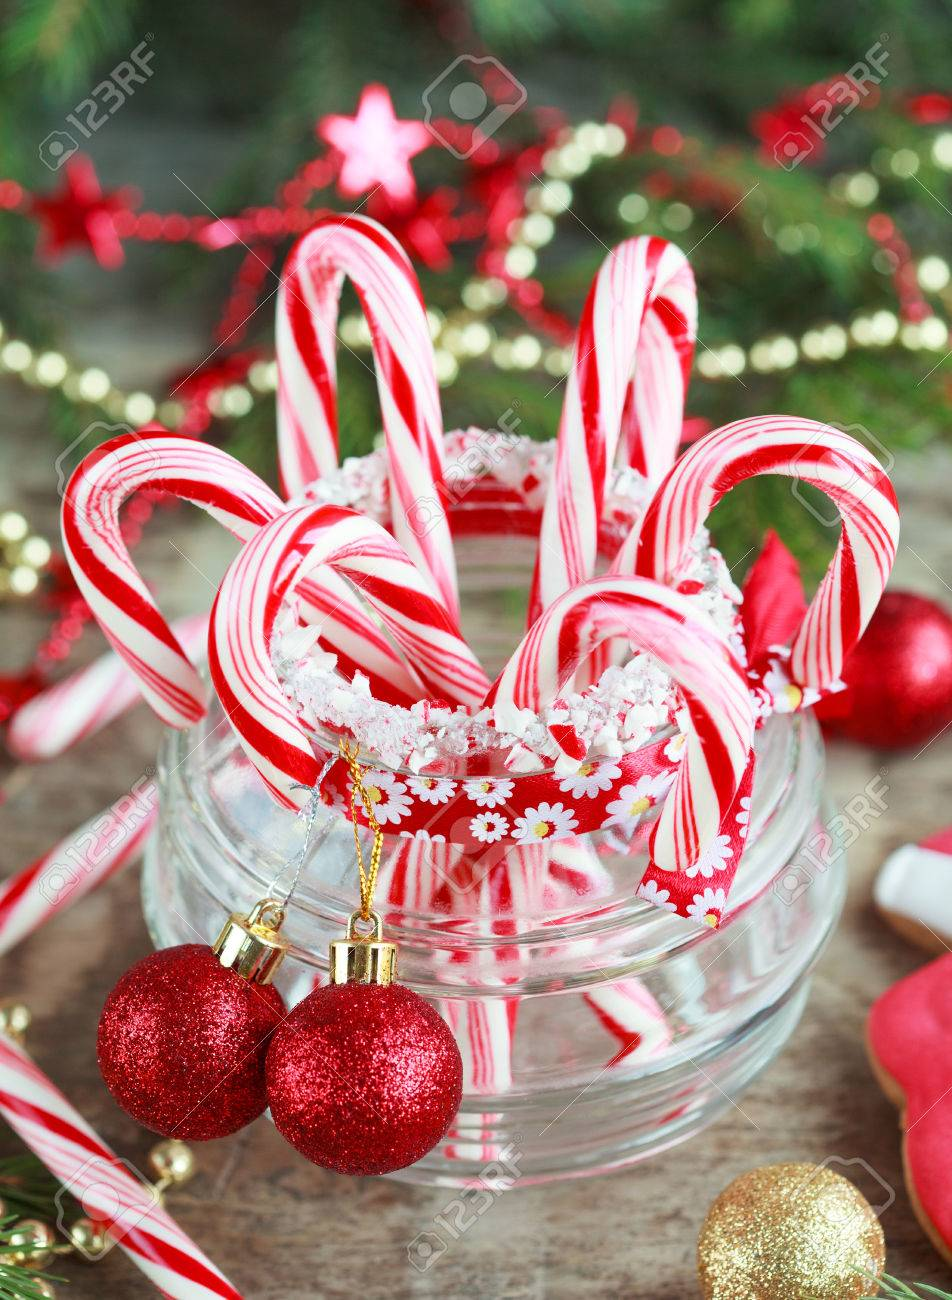 Red Candy Canes In The Glass Jar Between Christmas Decorations